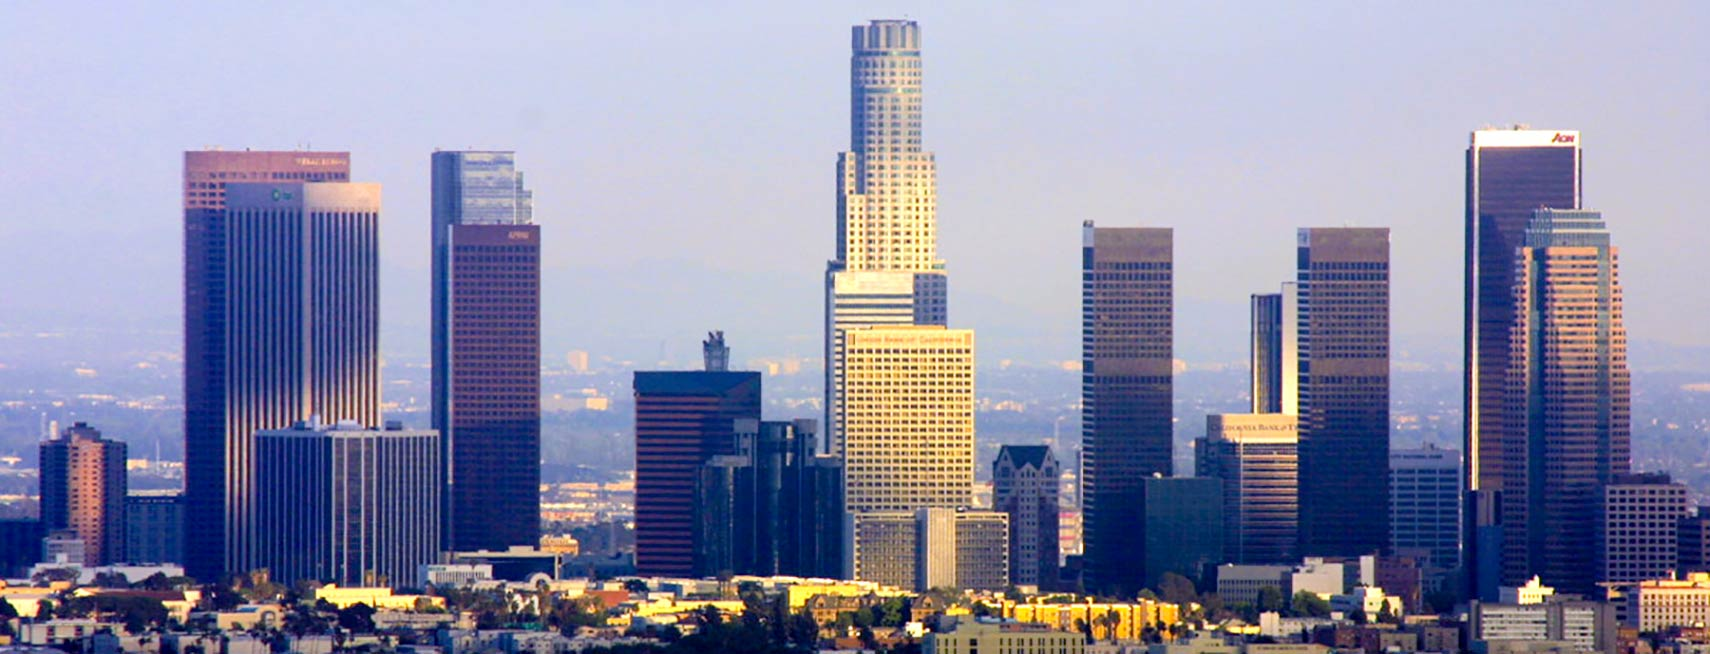 Google Map of the City Los Angeles USA Nations Online Project